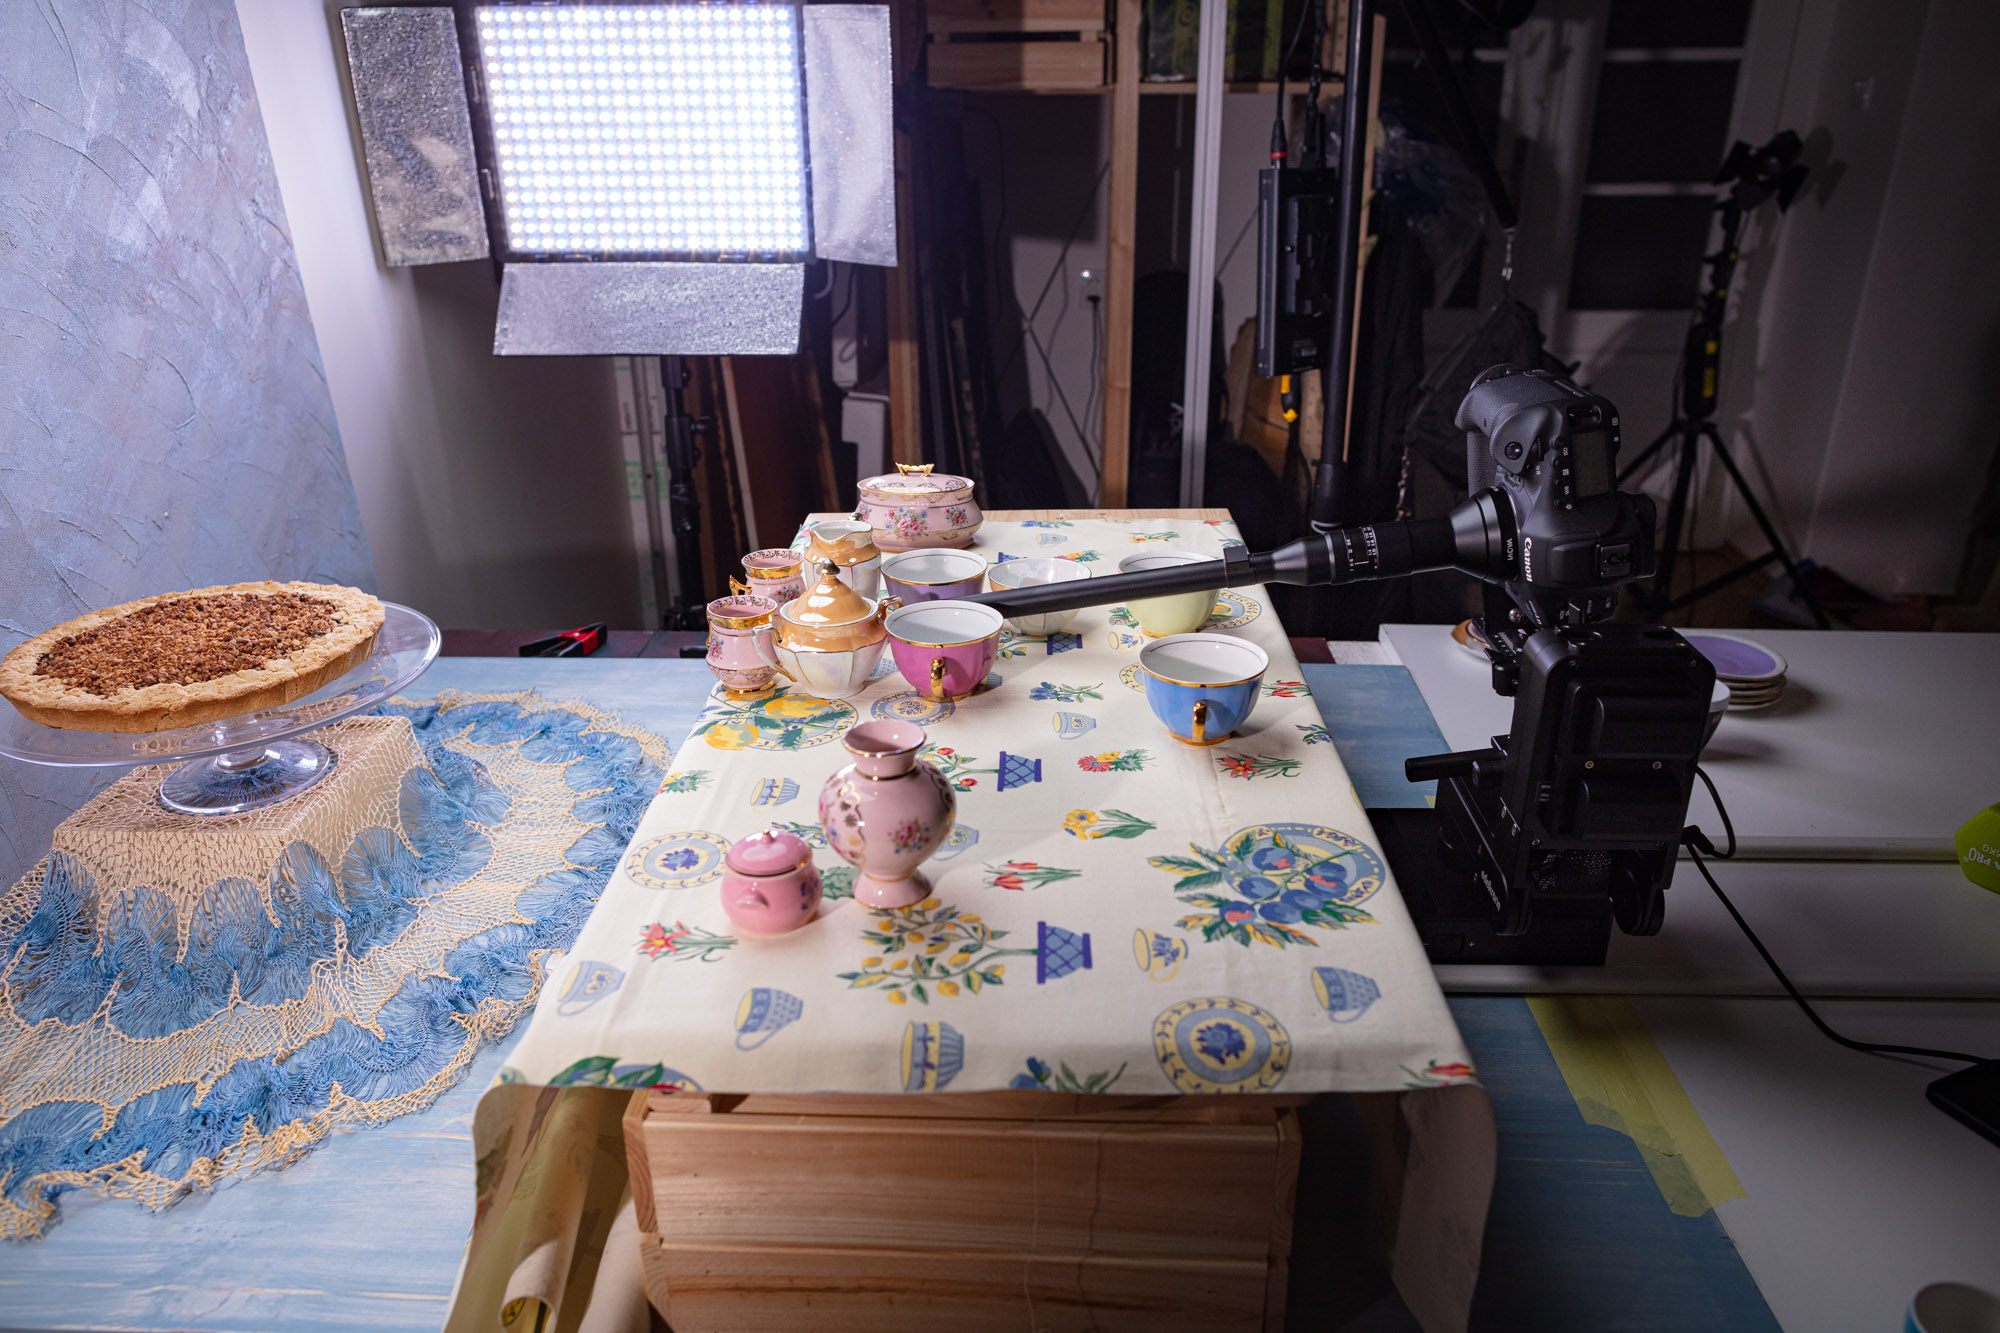 """Behind the scenes at the video production of """"Vegan Cherry Crumble Pie Recipe"""". A big table set up resembling a """"decorated table"""". In a studio with various lamps and cameras."""